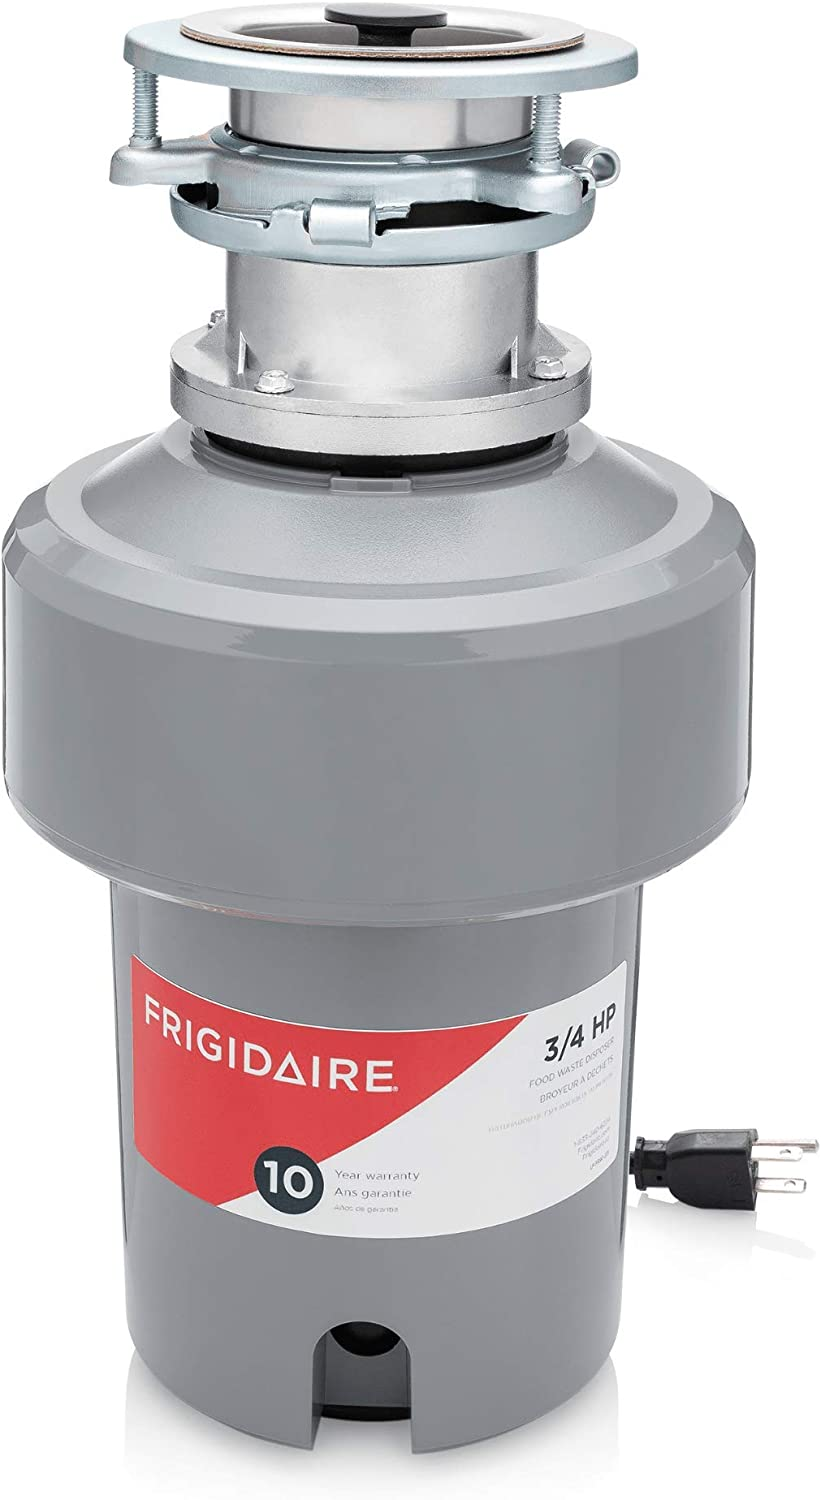 Frigidaire FF75DISPB1 3 Tampa Mall 4-HP Batch Hor Feed Corded Limited price 4 Disposer